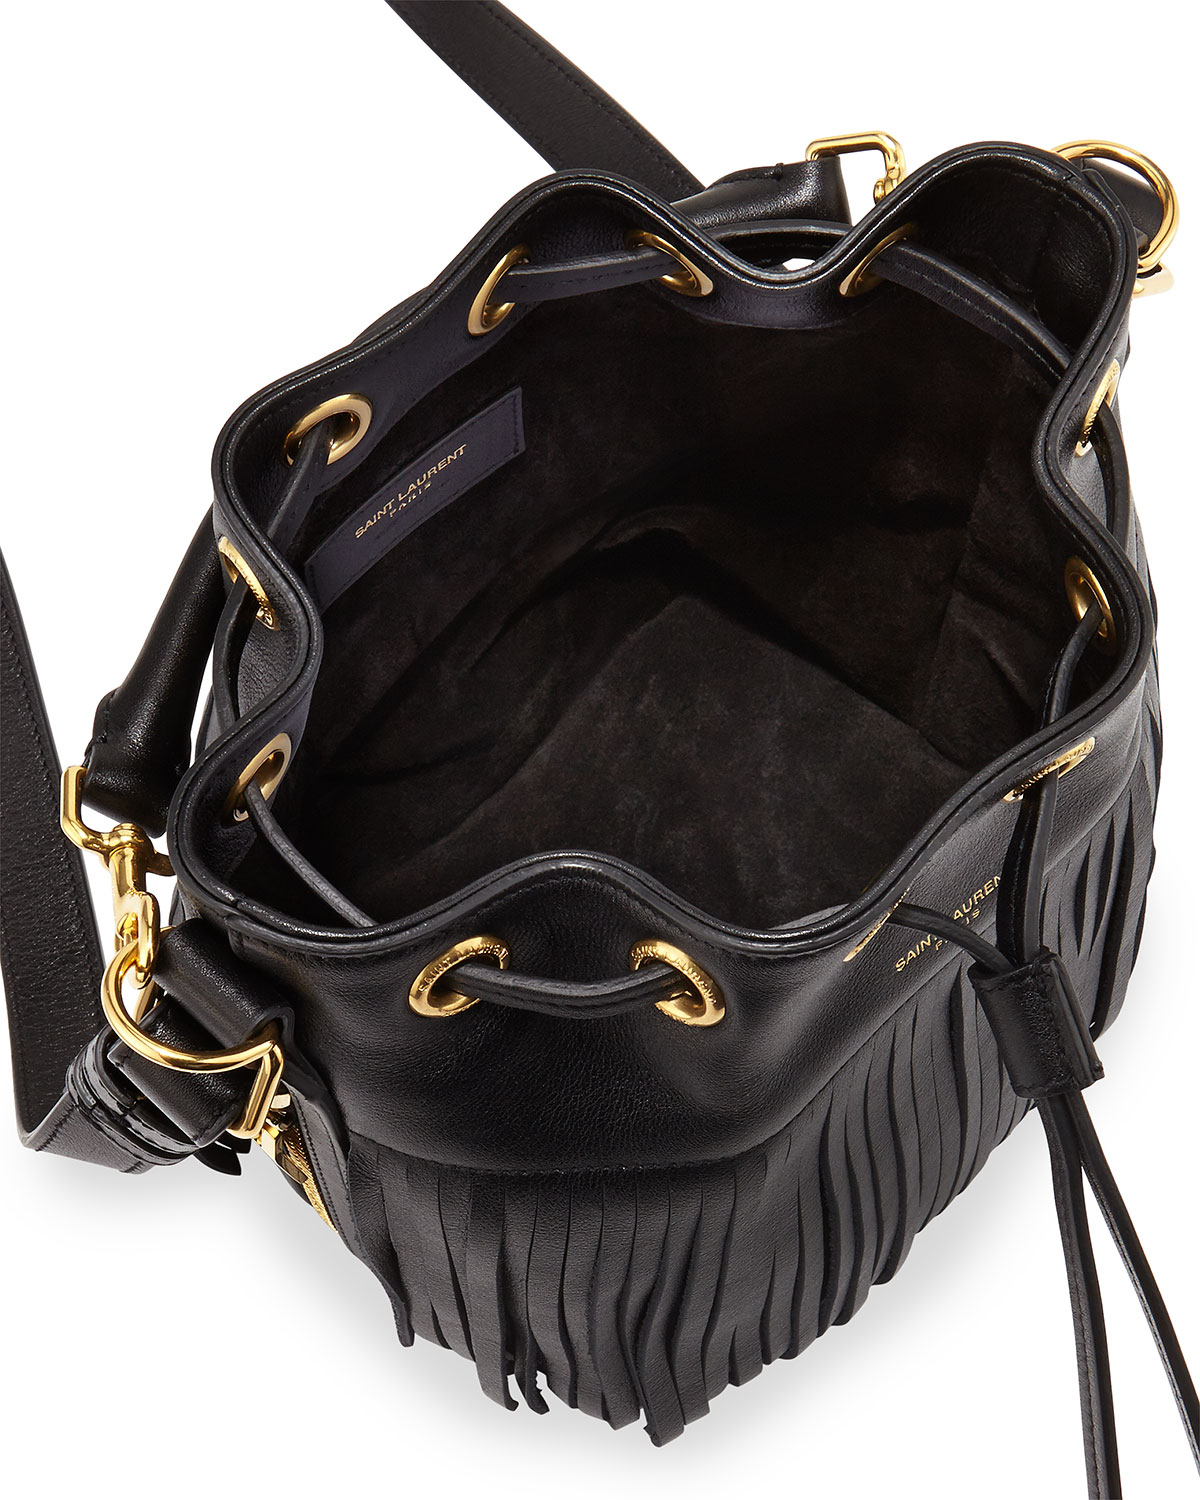 ysl bags new collection - emmanuel small studded fringe bucket bag, black